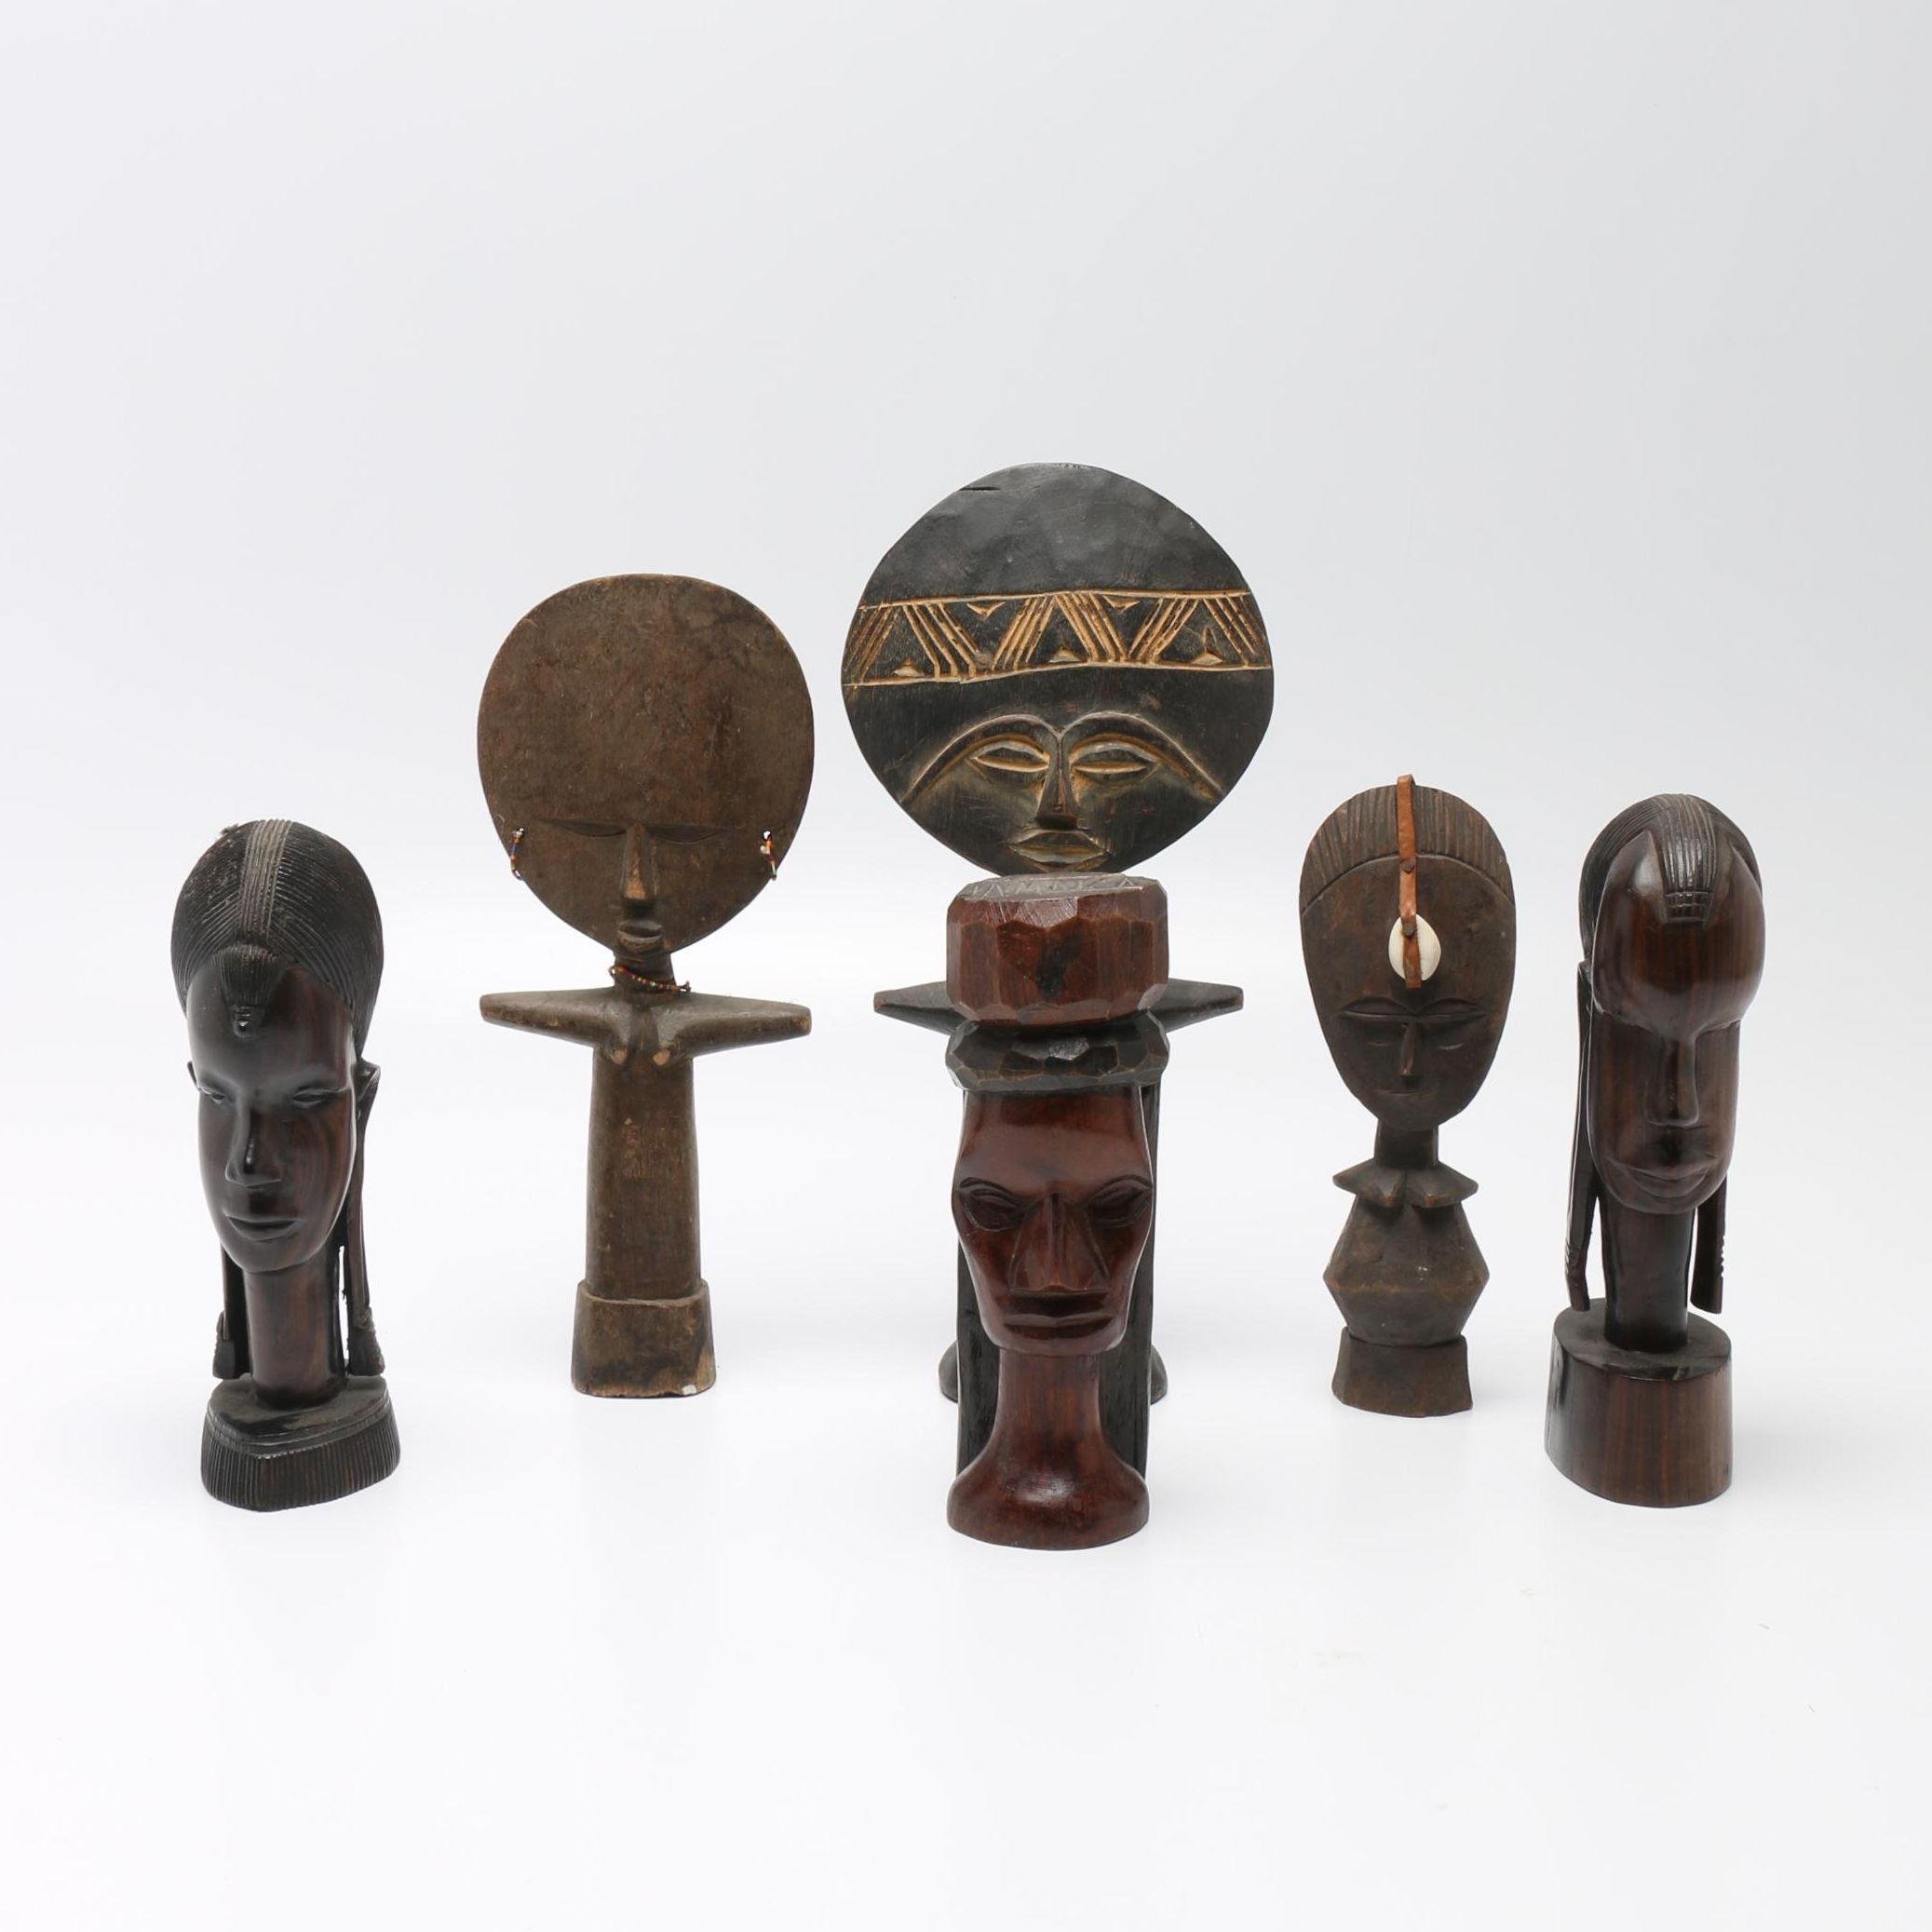 Ethnographic Carved Wood Statuettes